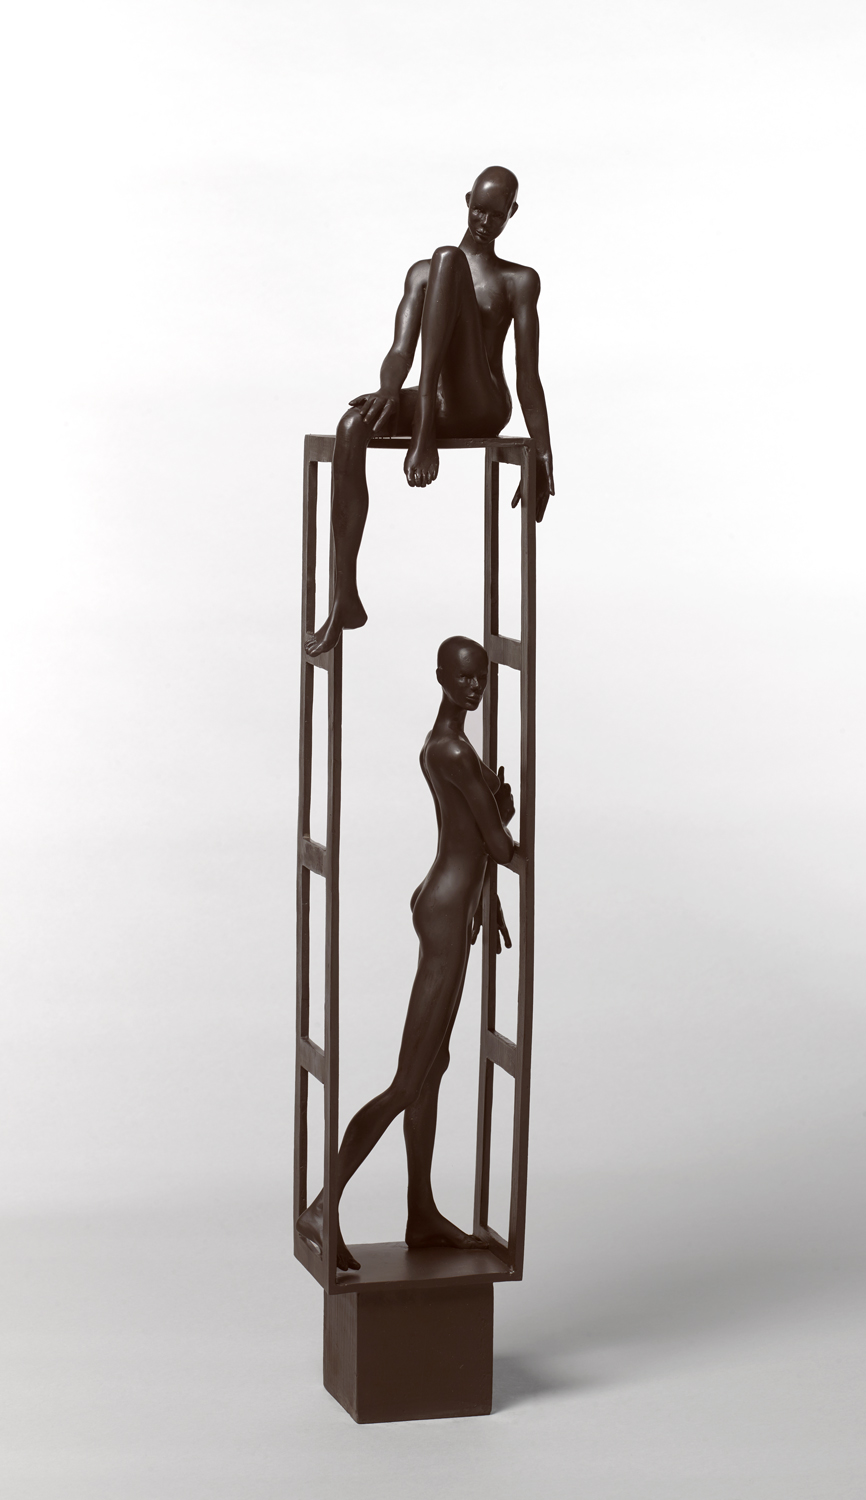 Estructura 1 , 2019 bronze 29 3/4 x 5 1/2 x 5 inches;  75.6 x 14 x 12.7 centimeters